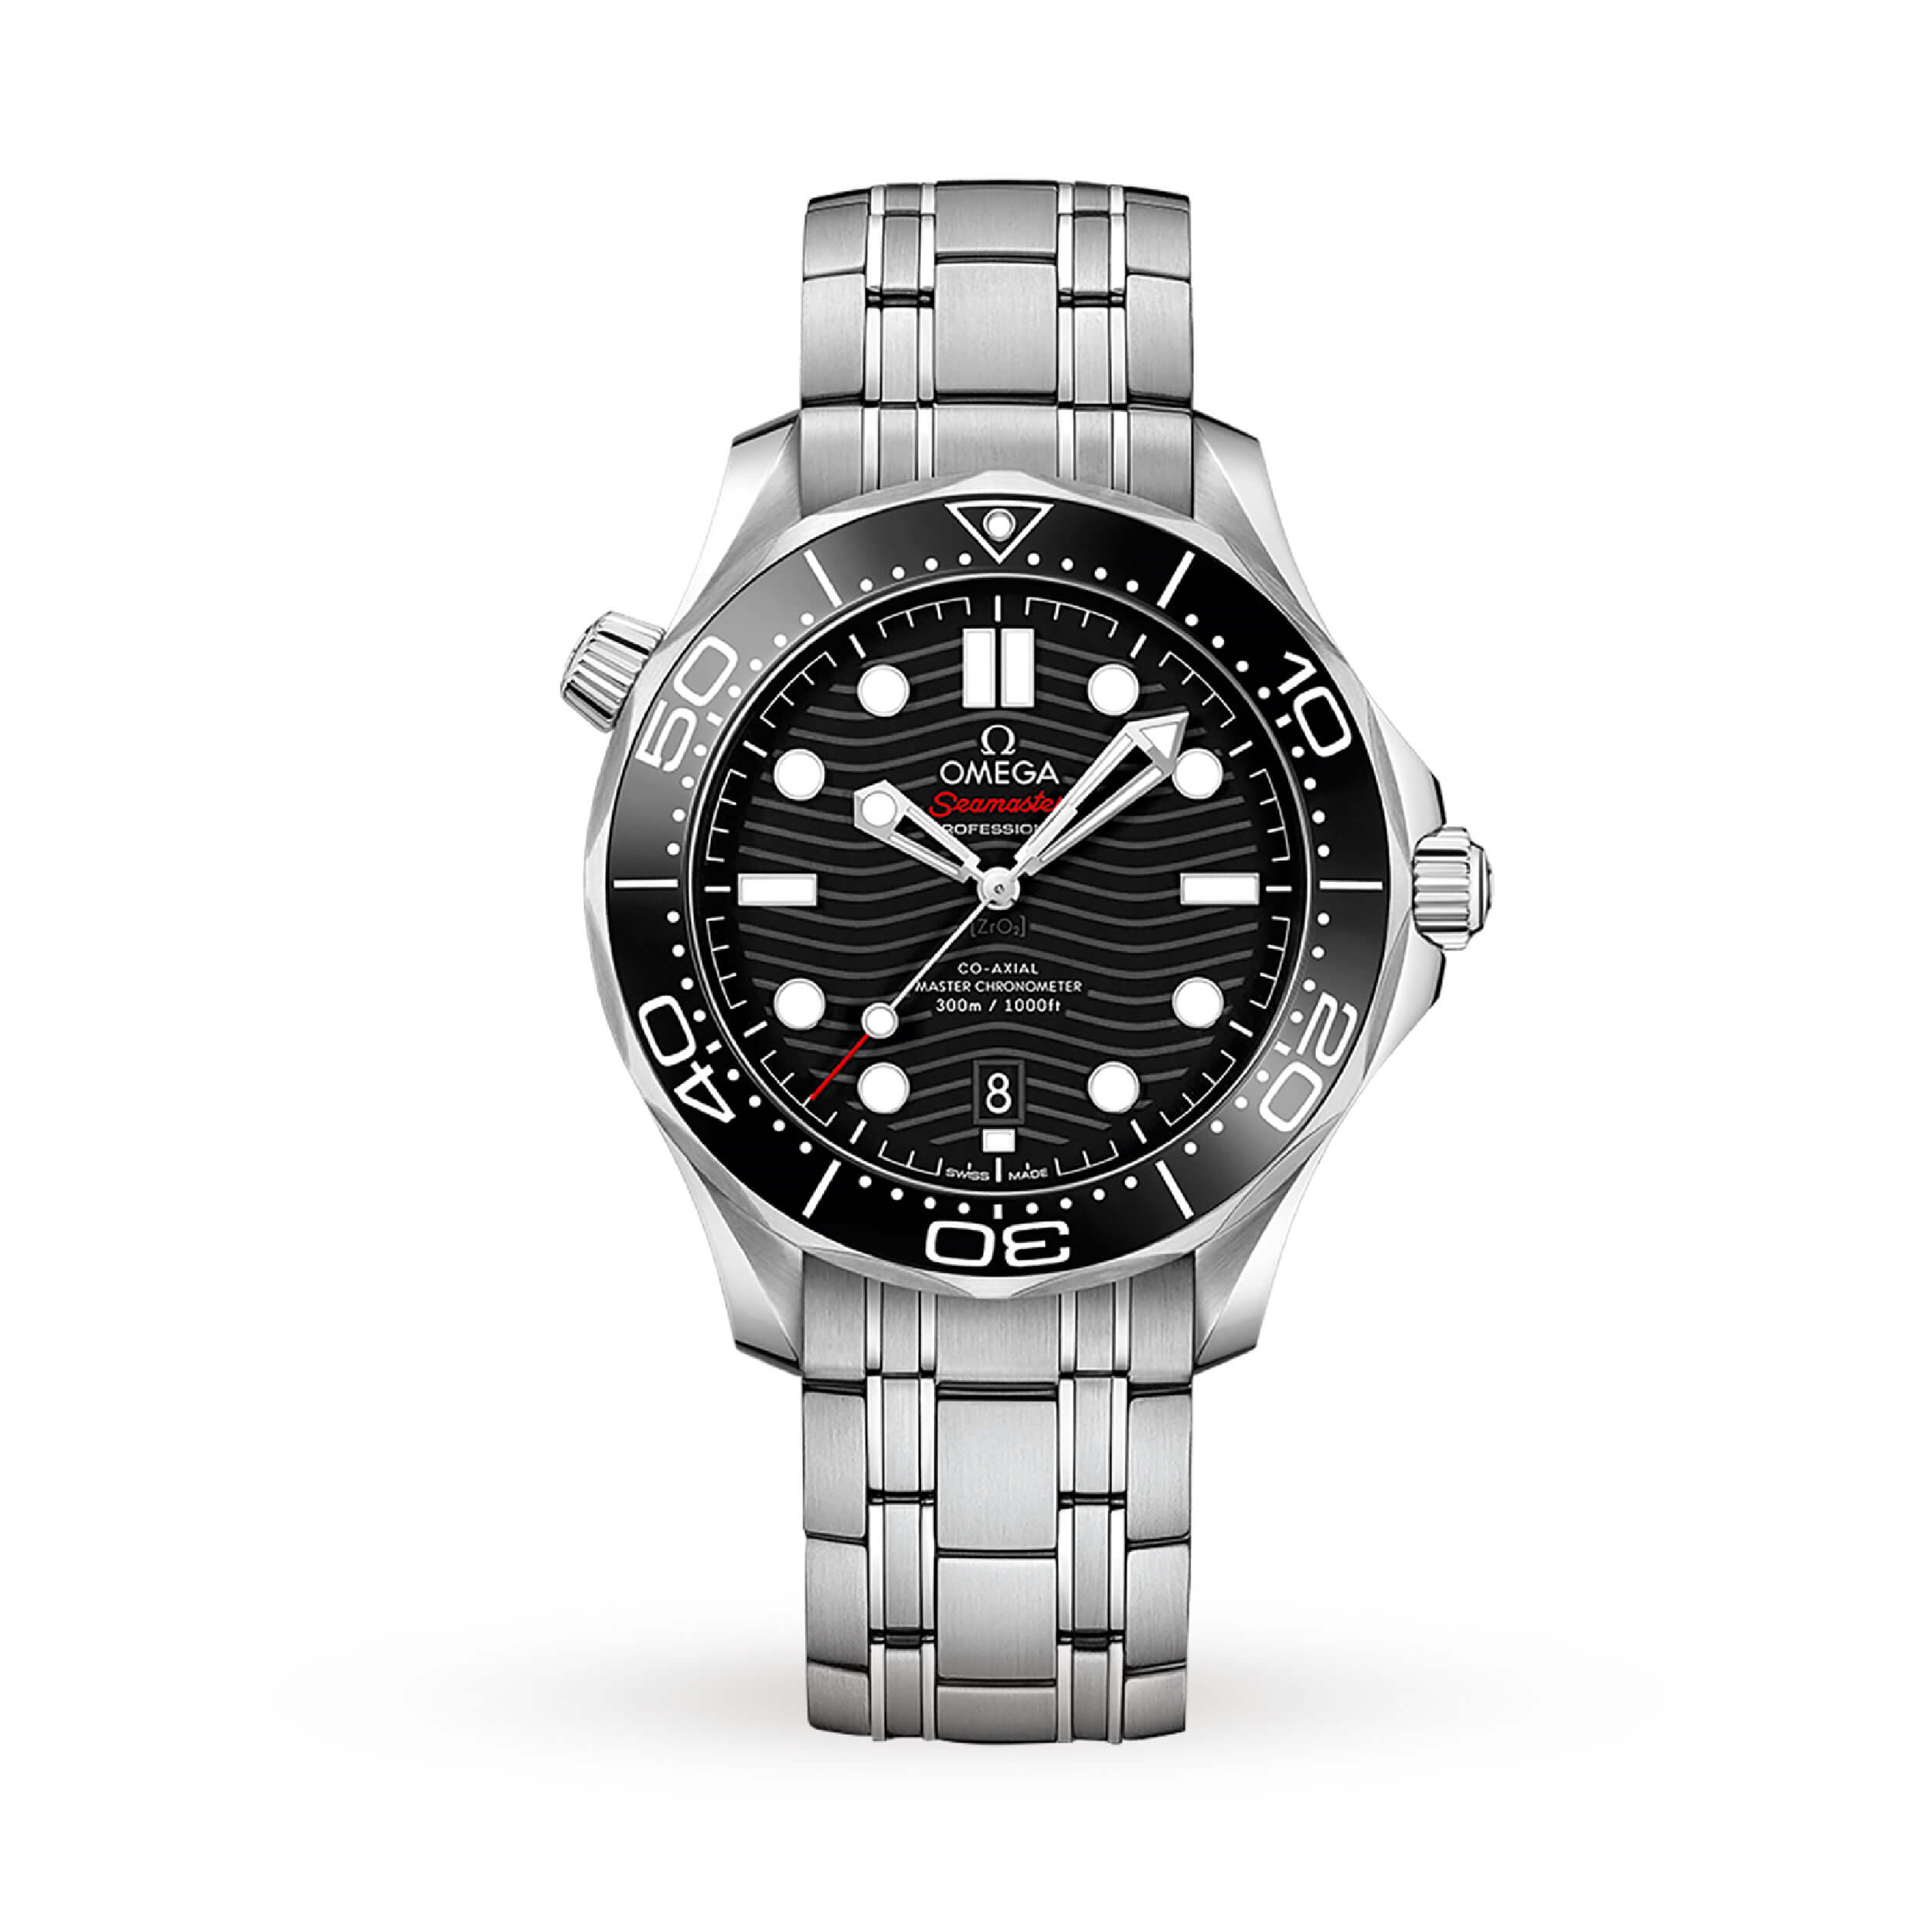 Omega Seamaster Diver 300m | Wristwatches360